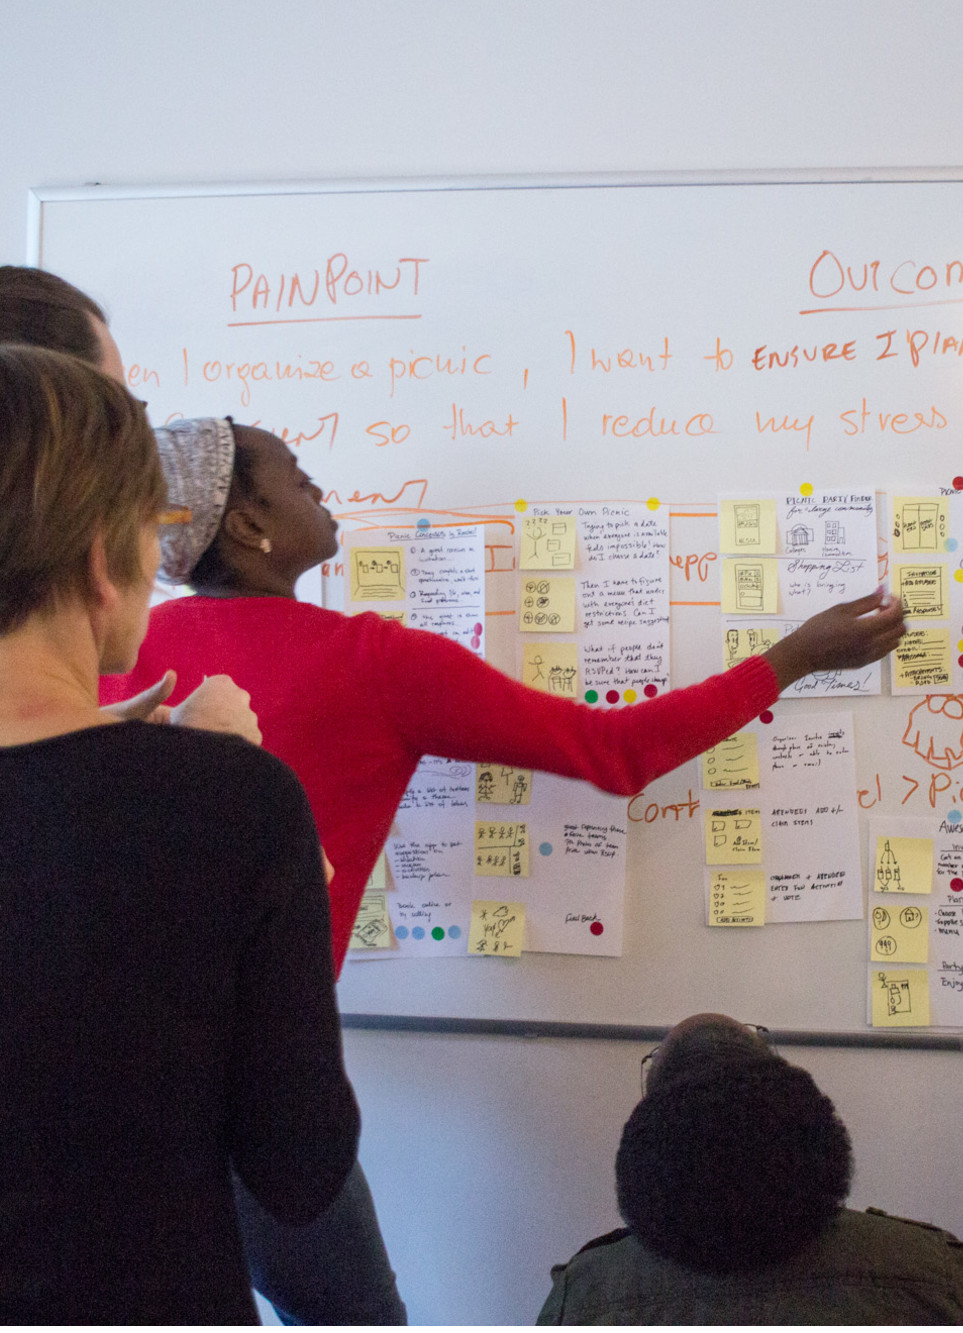 Pining up storyboard during a product design sprint